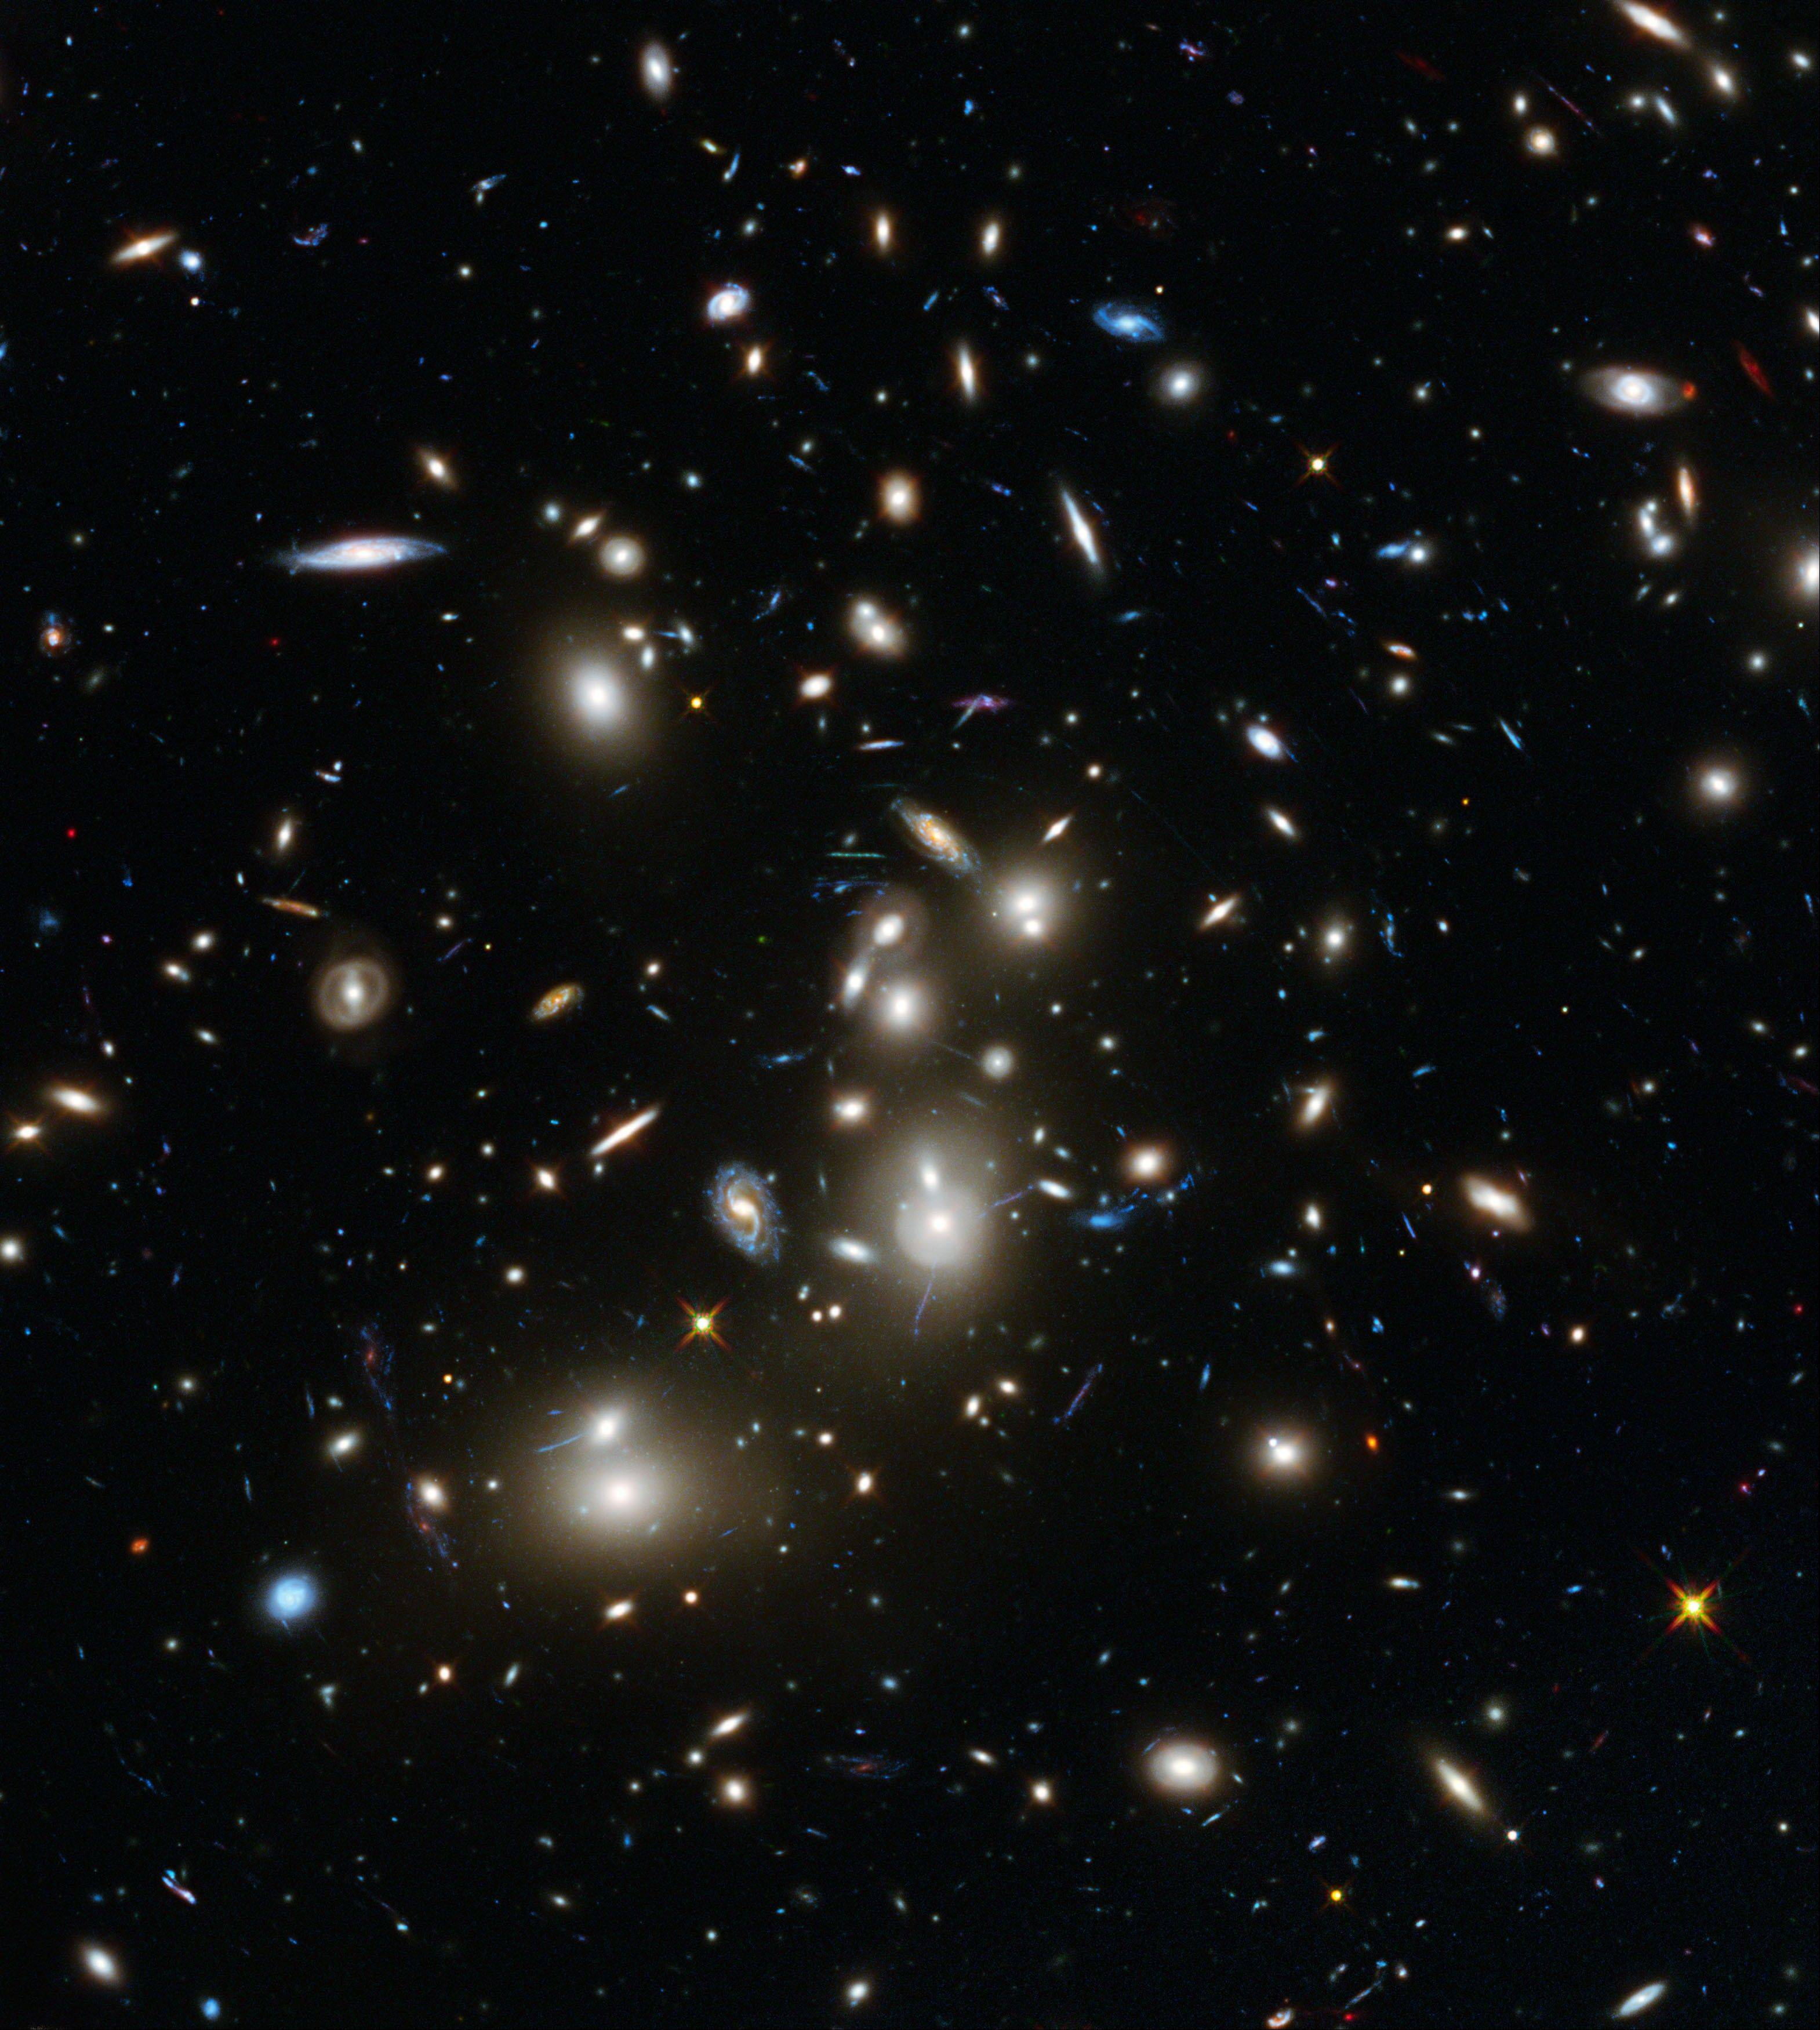 This undated image made available by the European Space Agency and NASA on Tuesday shows galaxies in the Abell 2744 cluster, and blue galaxies behind it, distorted and amplified by gravitational lensing. The long-exposure image taken with NASA's Hubble Space Telescope shows some of the intrinsically faintest and youngest galaxies ever detected in visible light.